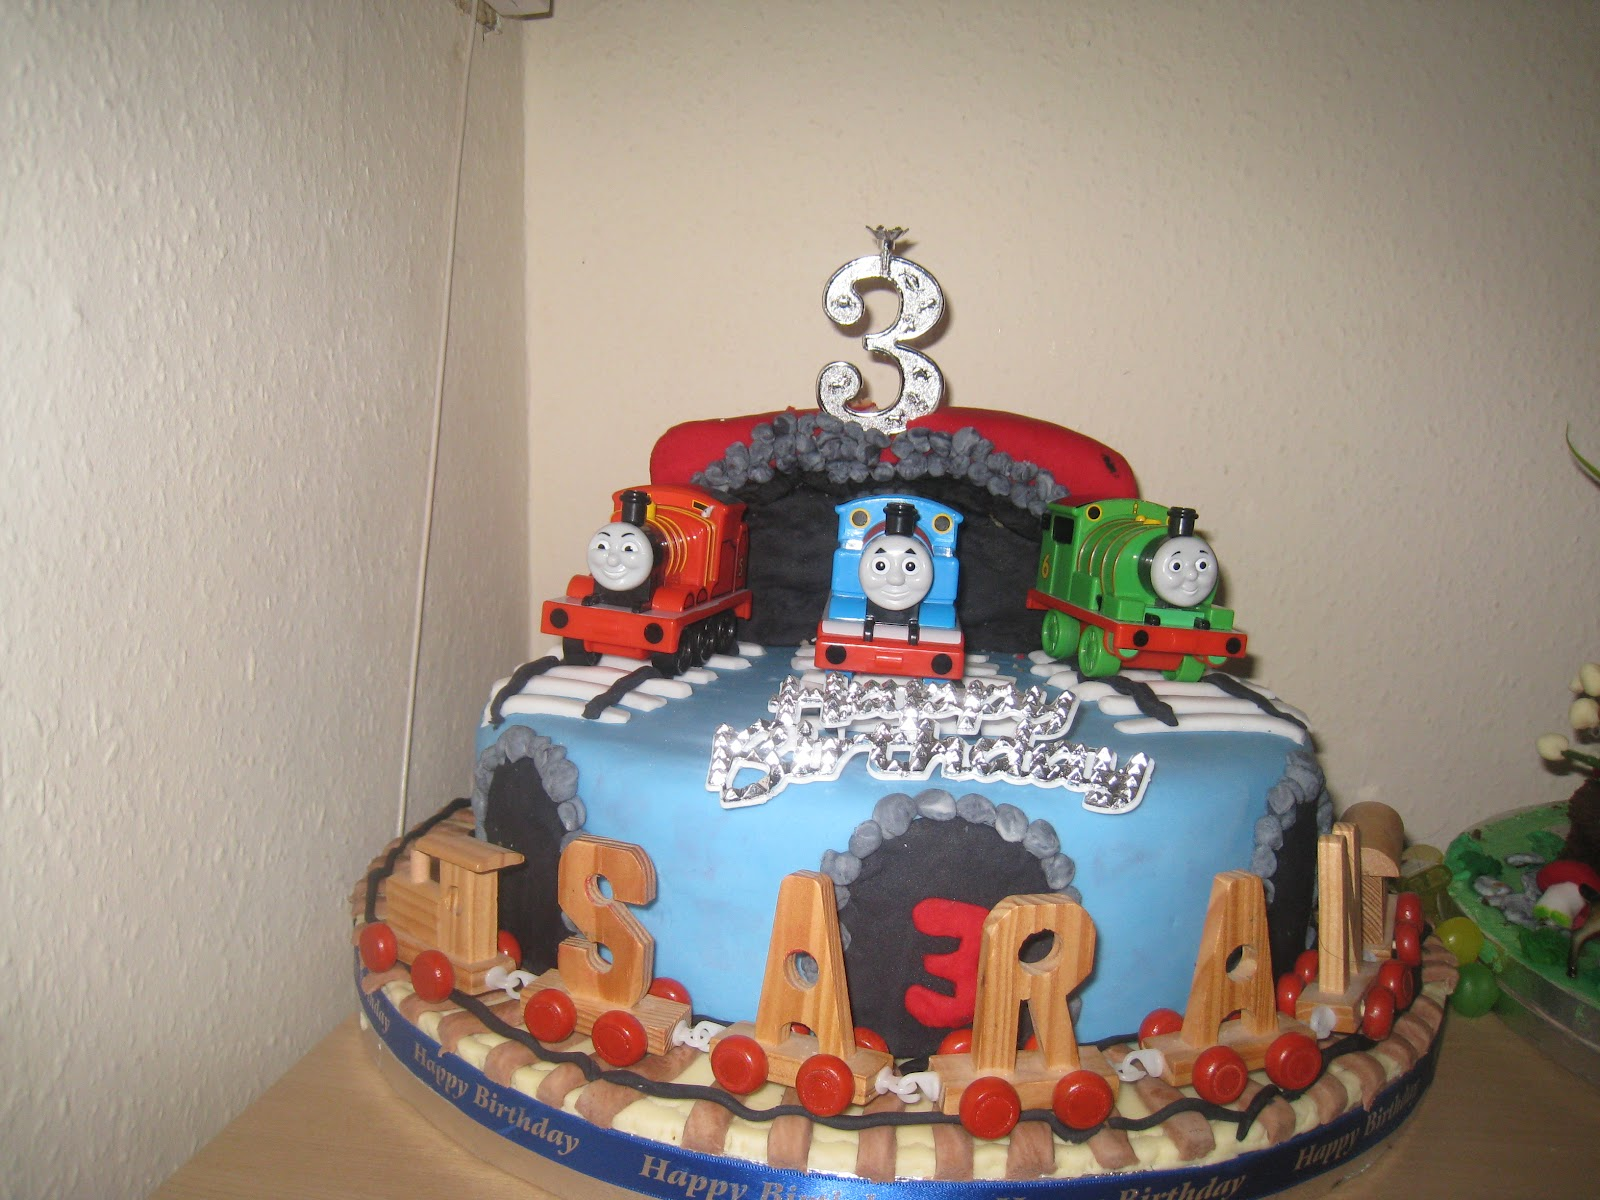 Birthday Cake Images To Son : Rajany s Cake Decorations and Sugarcraft: Thomas and Friends - 3rd birthday cake (for my son)